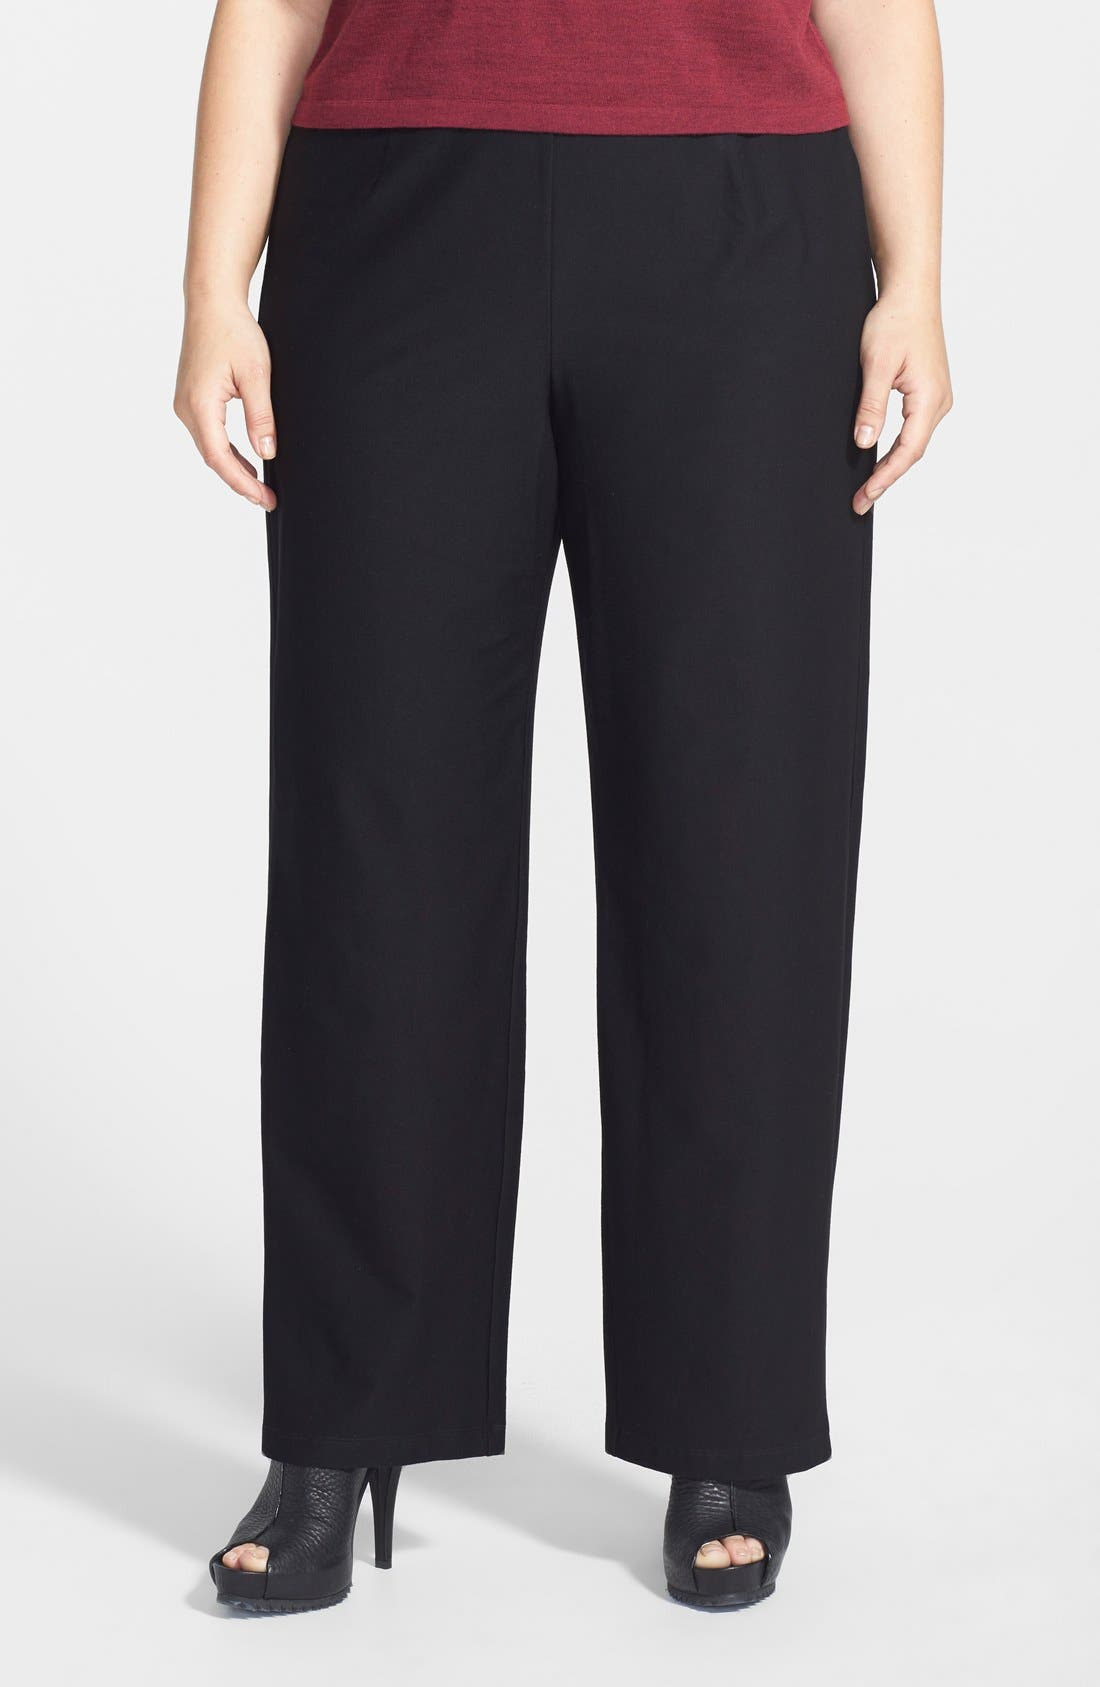 Alternate Image 1 Selected - Eileen Fisher Straight Leg Crepe Pants (Plus Size)